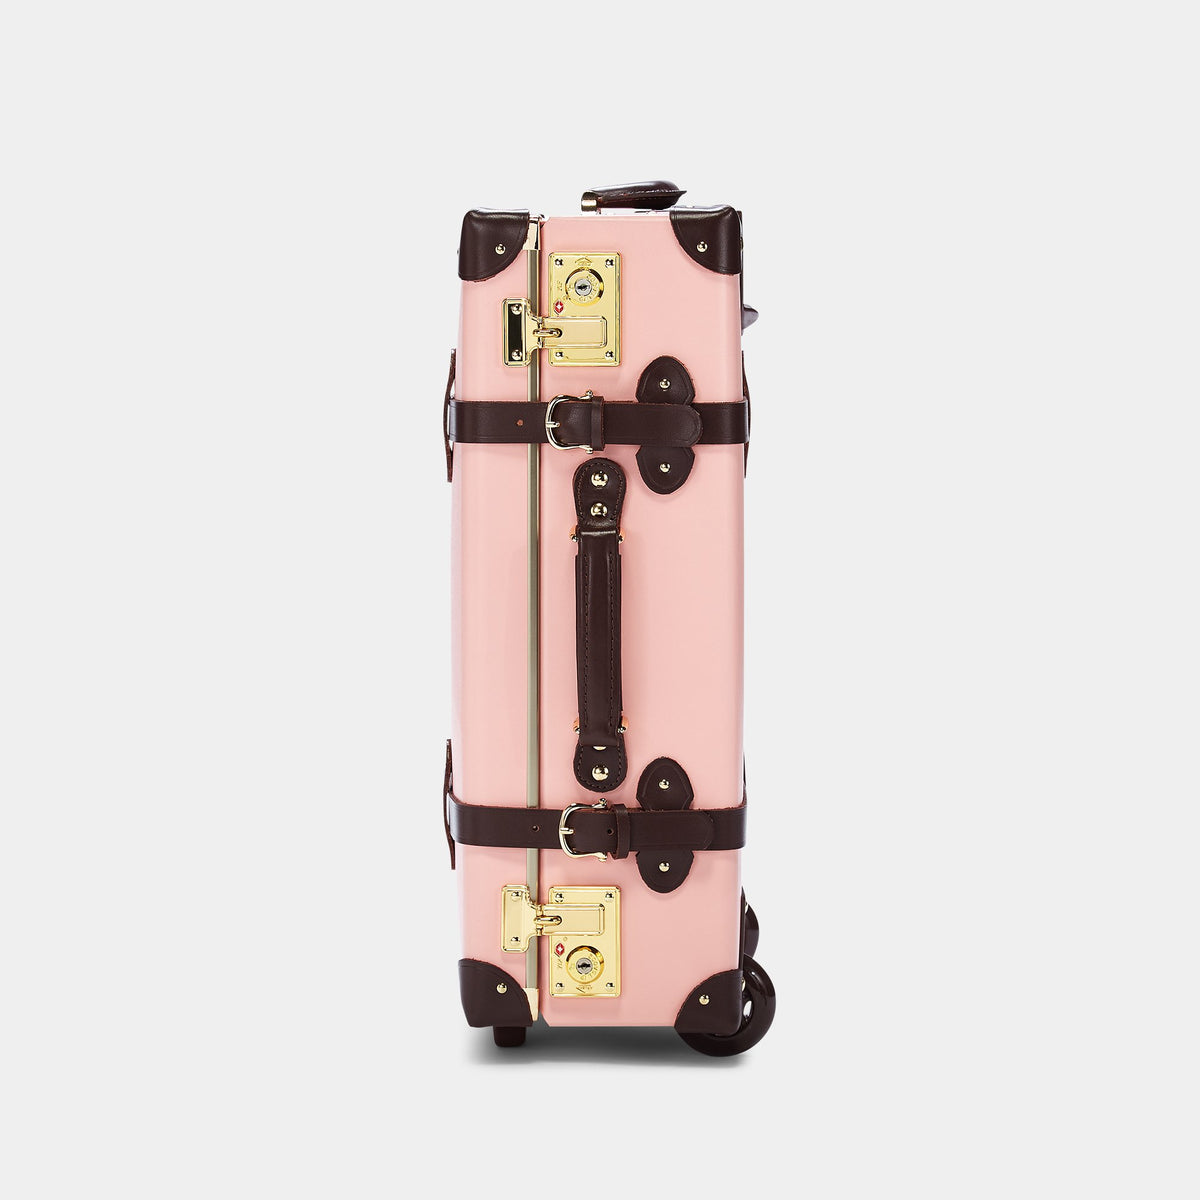 The Artiste Carryon in Pink - Old Fashioned Carry On Case - Exterior Side